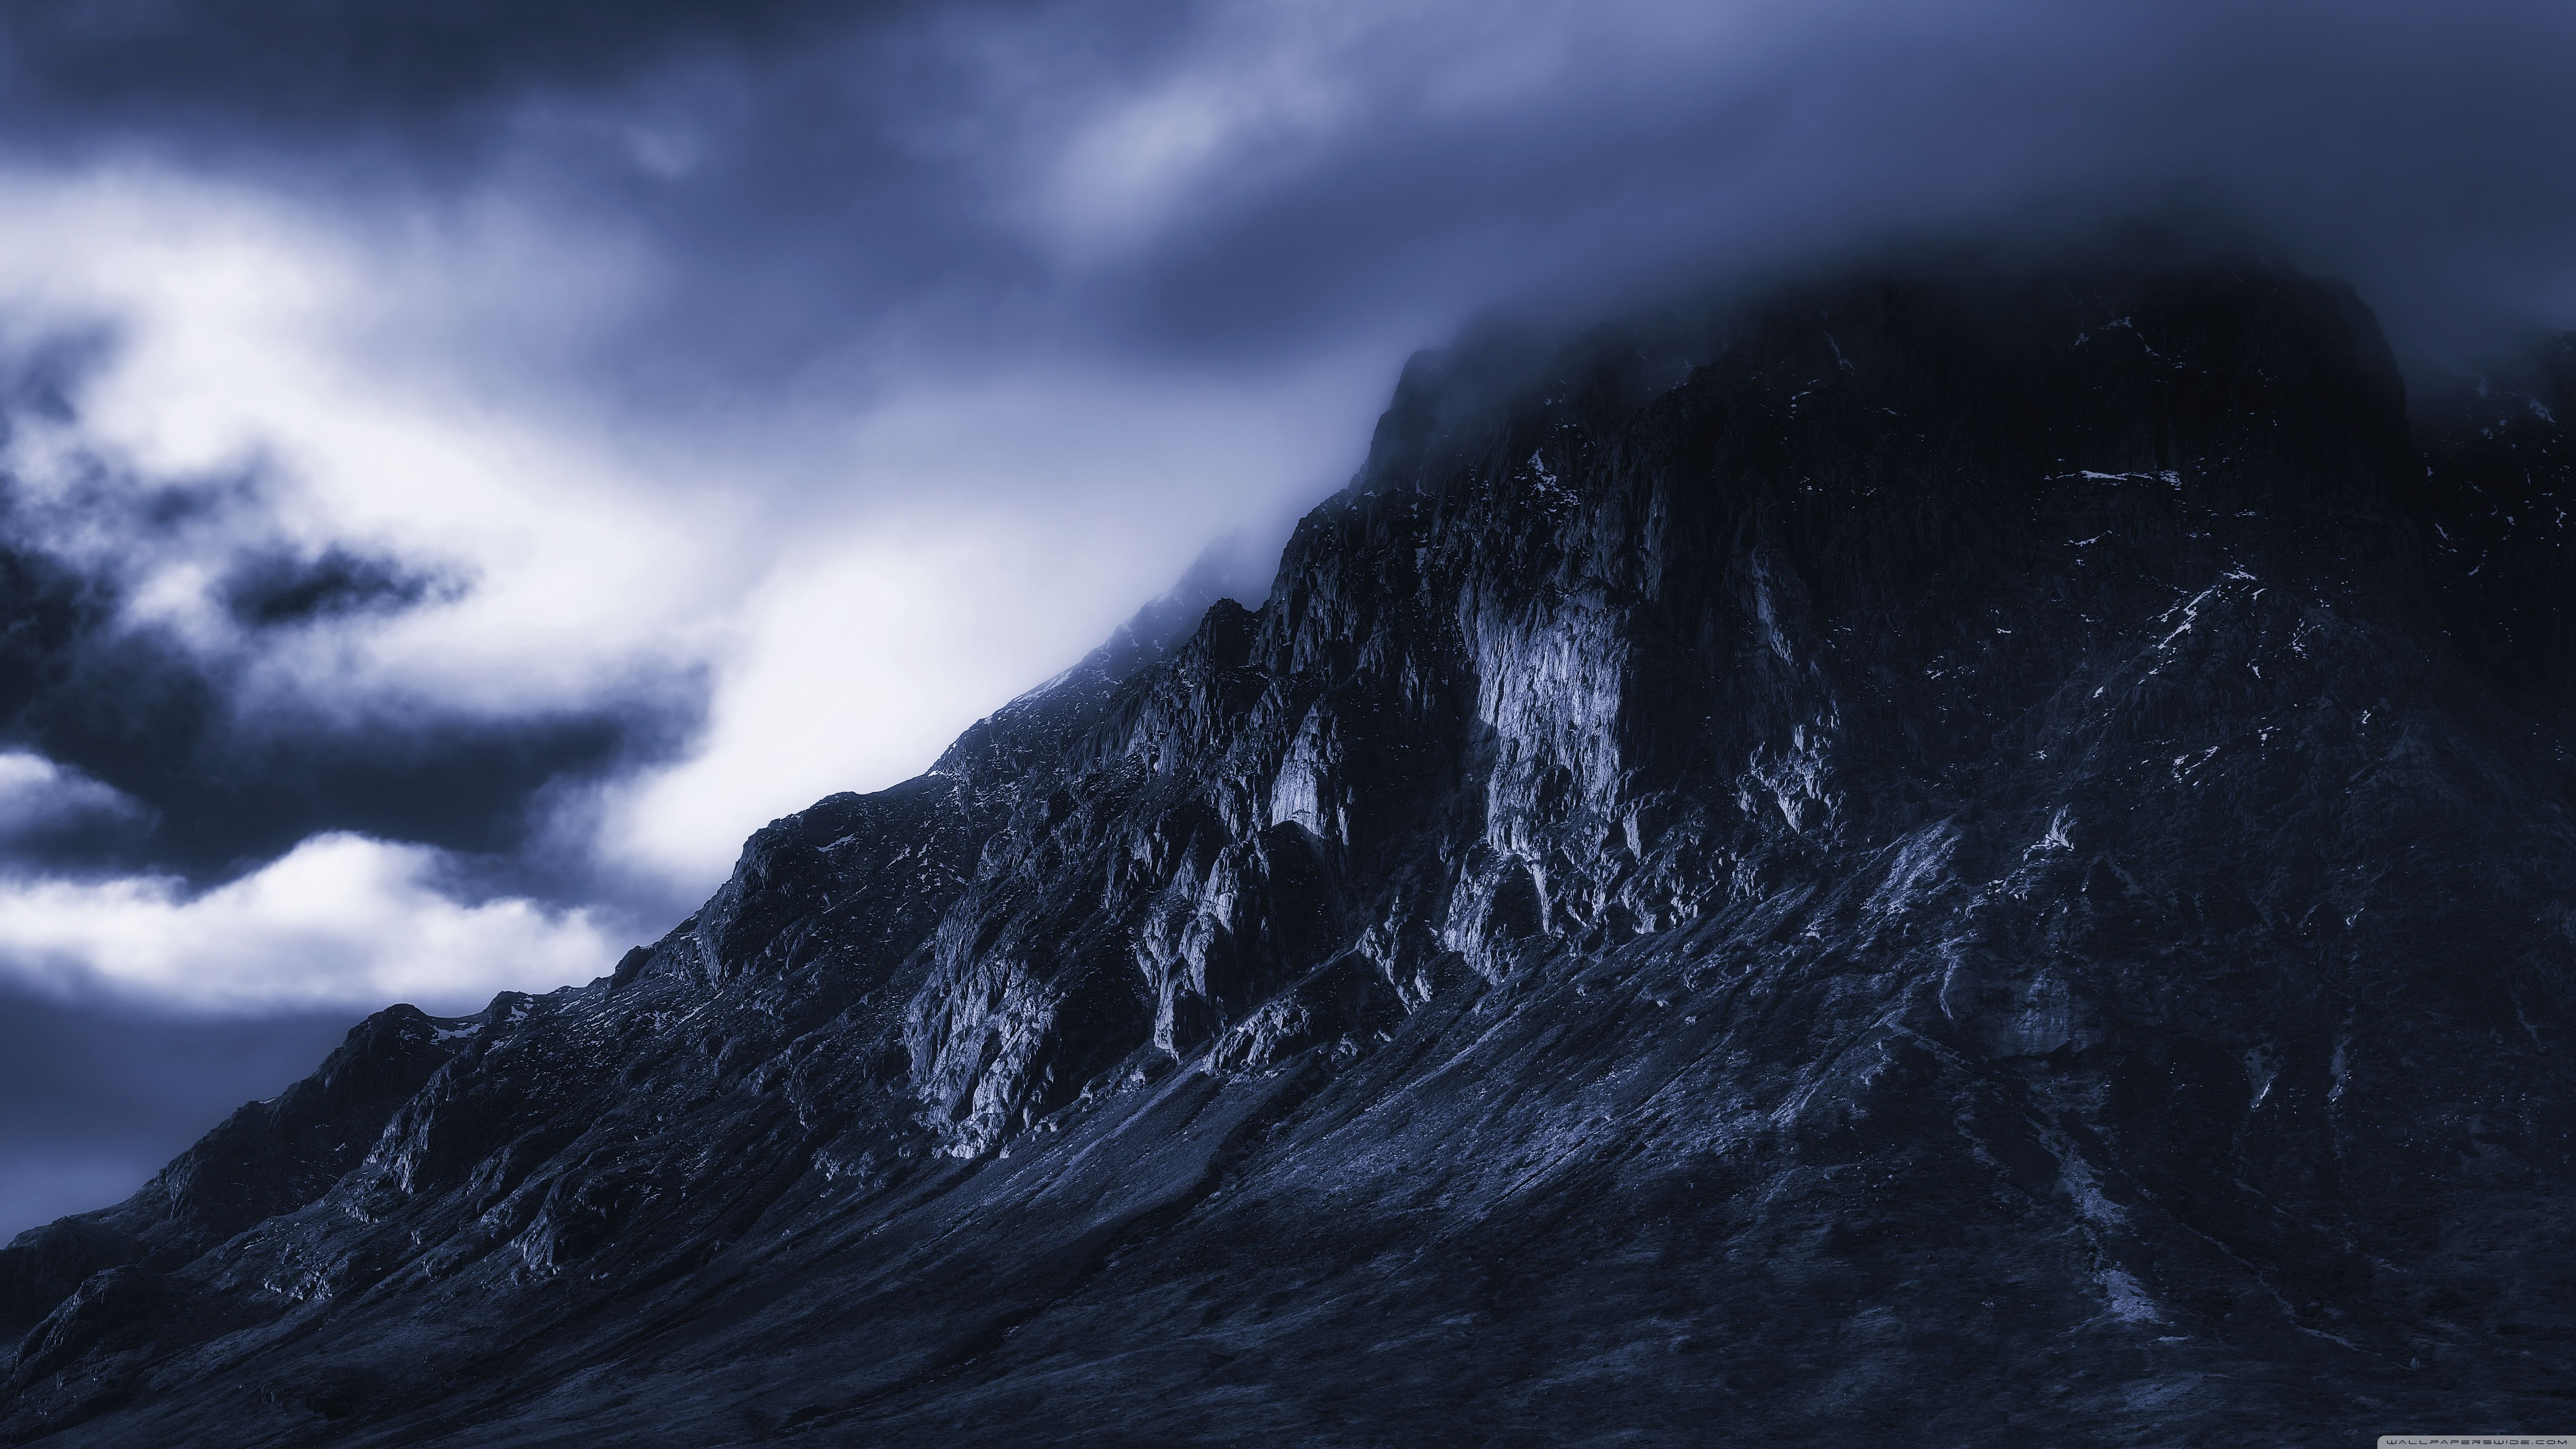 Dark Mountain Wallpapers   Top Dark Mountain Backgrounds 5120x2880